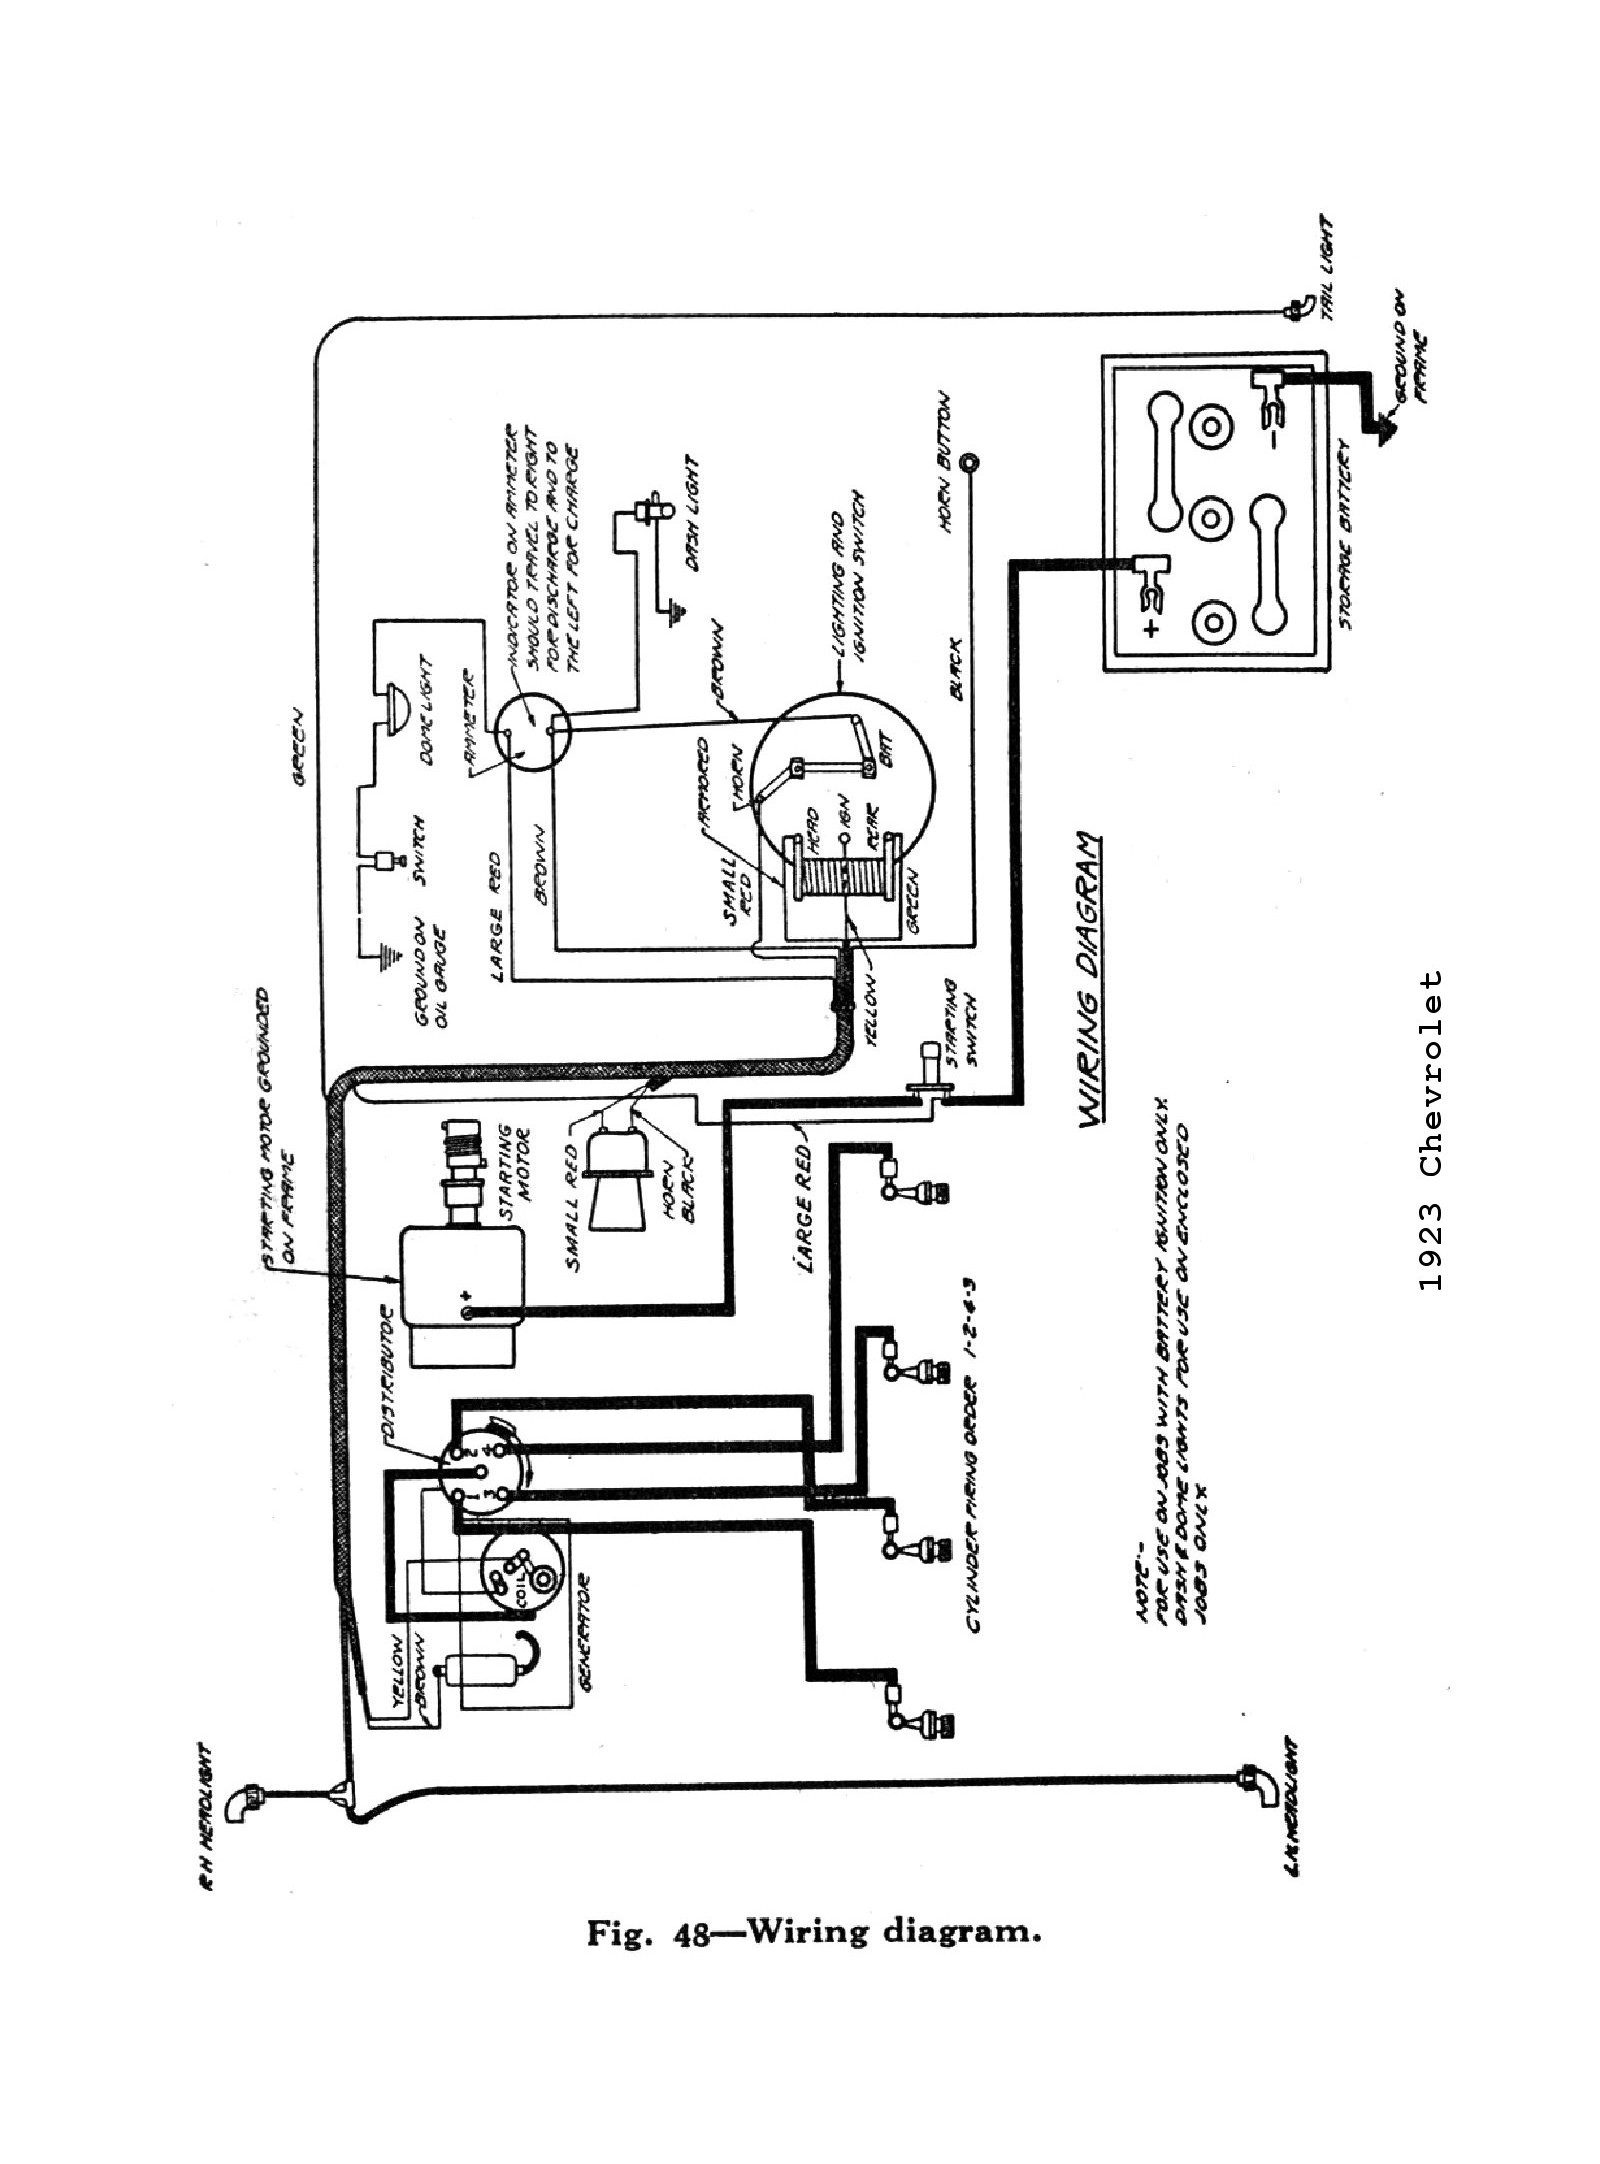 1934 ford wiring diagram wiring diagrams 1955 dodge wiring diagram 1934 ford wiring diagram [ 1600 x 2164 Pixel ]